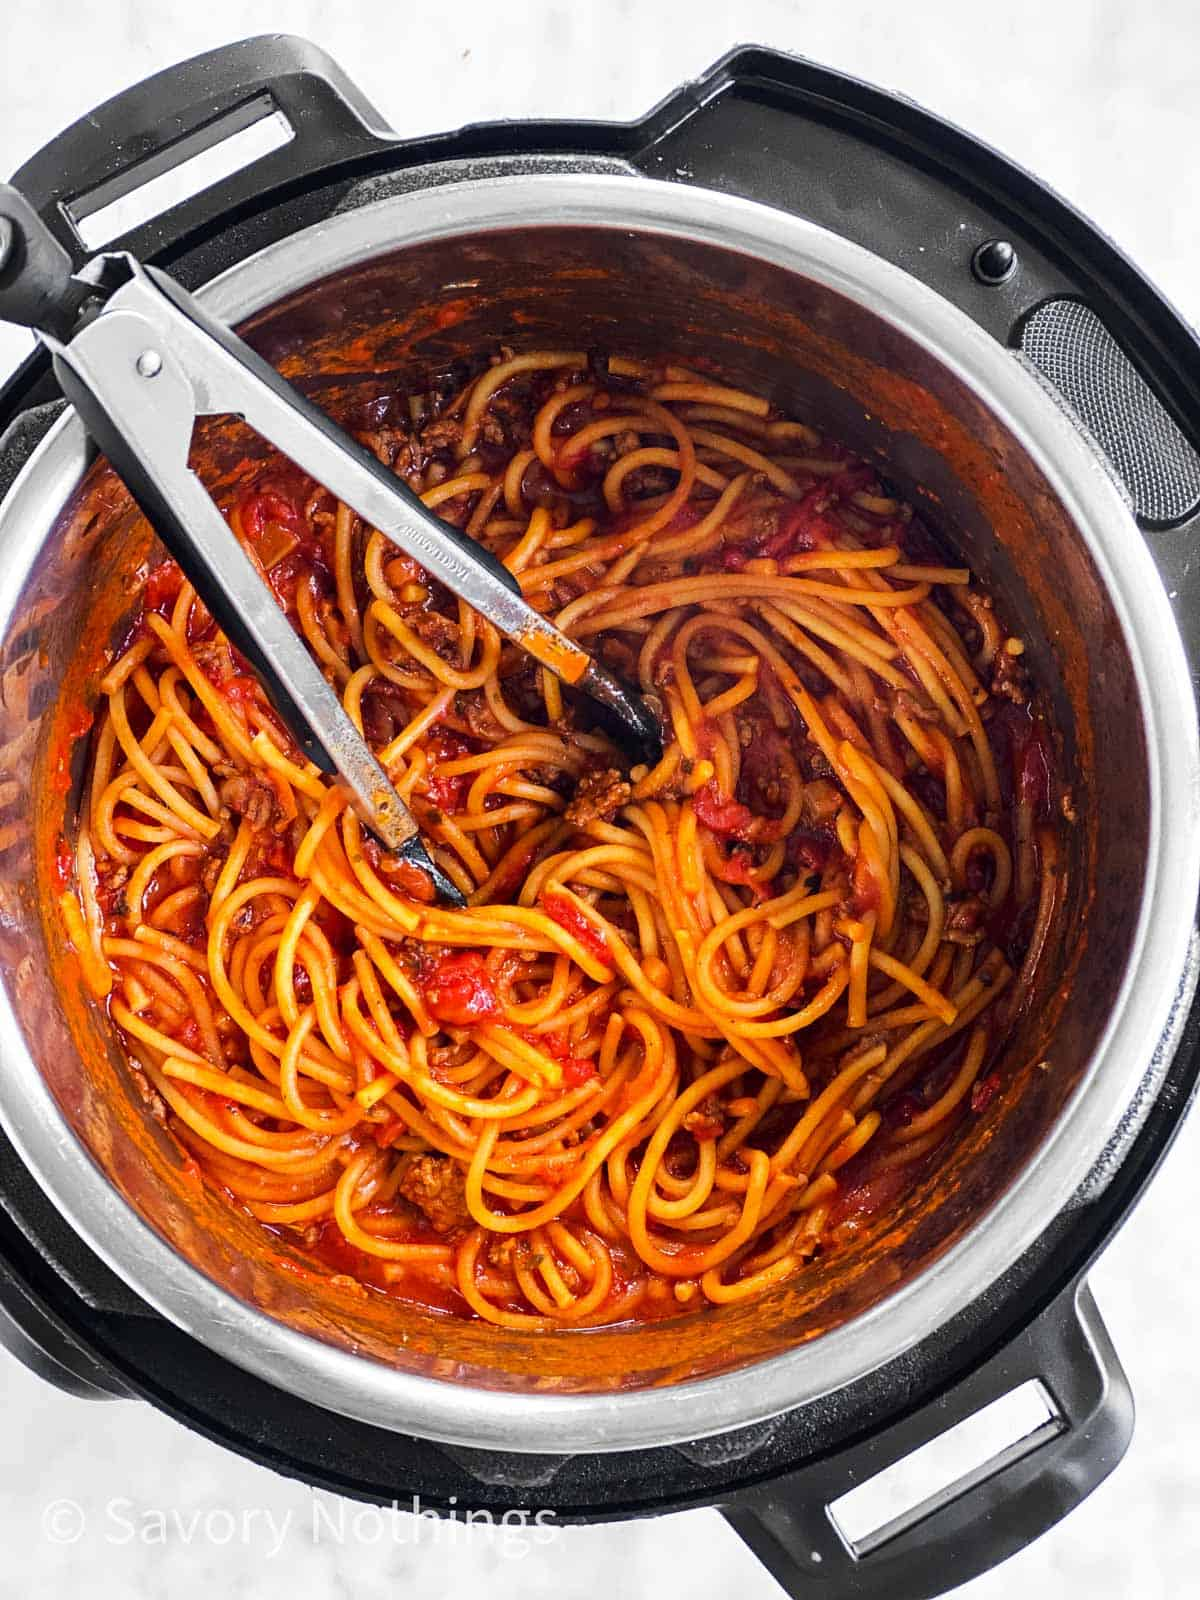 cooked spaghetti in meat sauce in instant pot with kitchen tongs